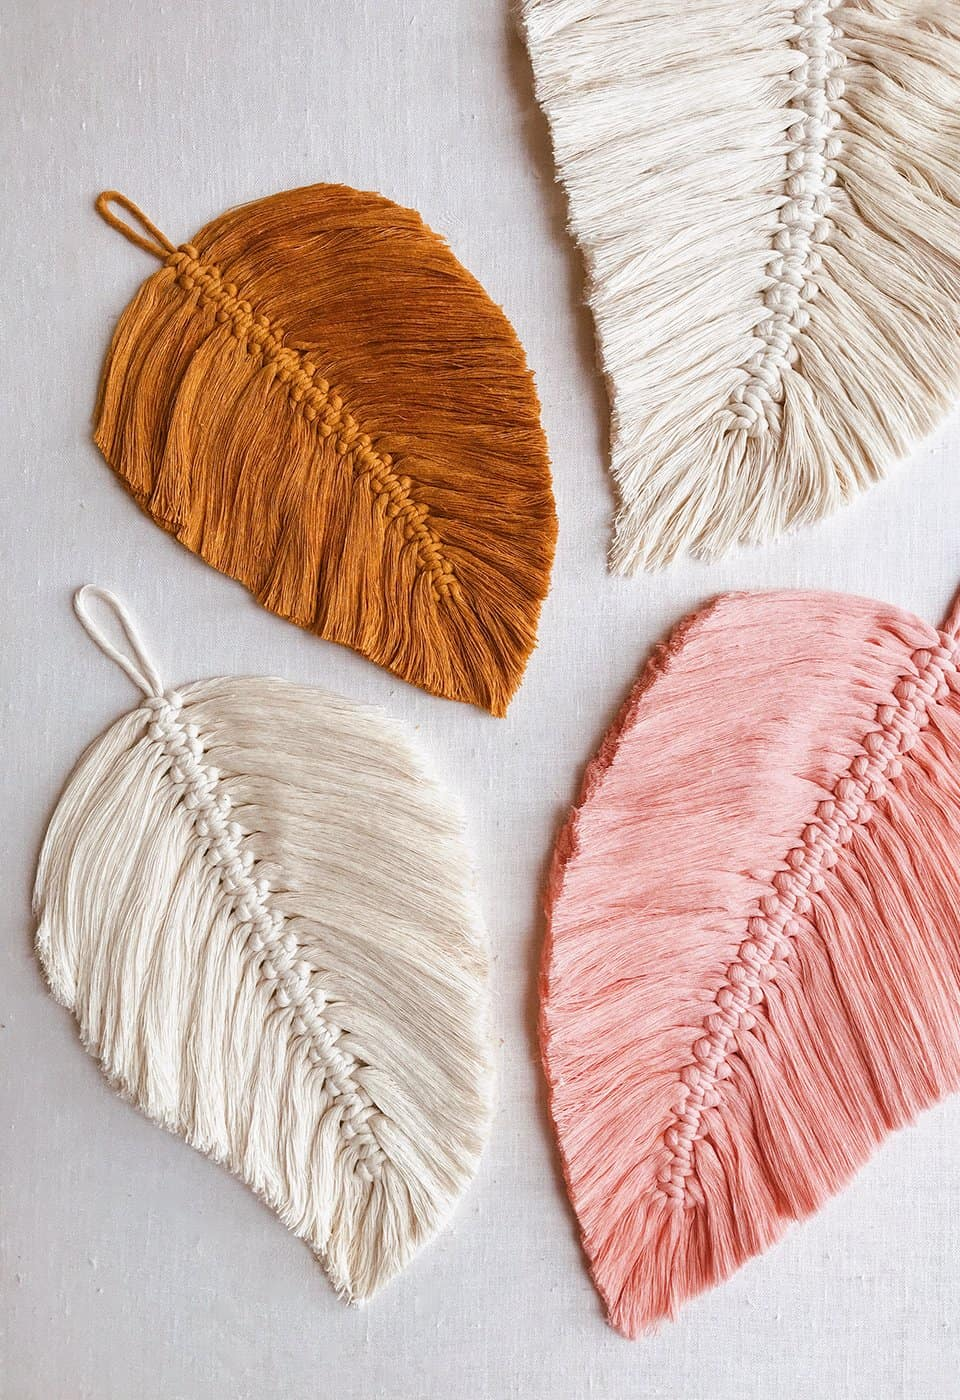 diy macrame feathers for fun crafts for teens